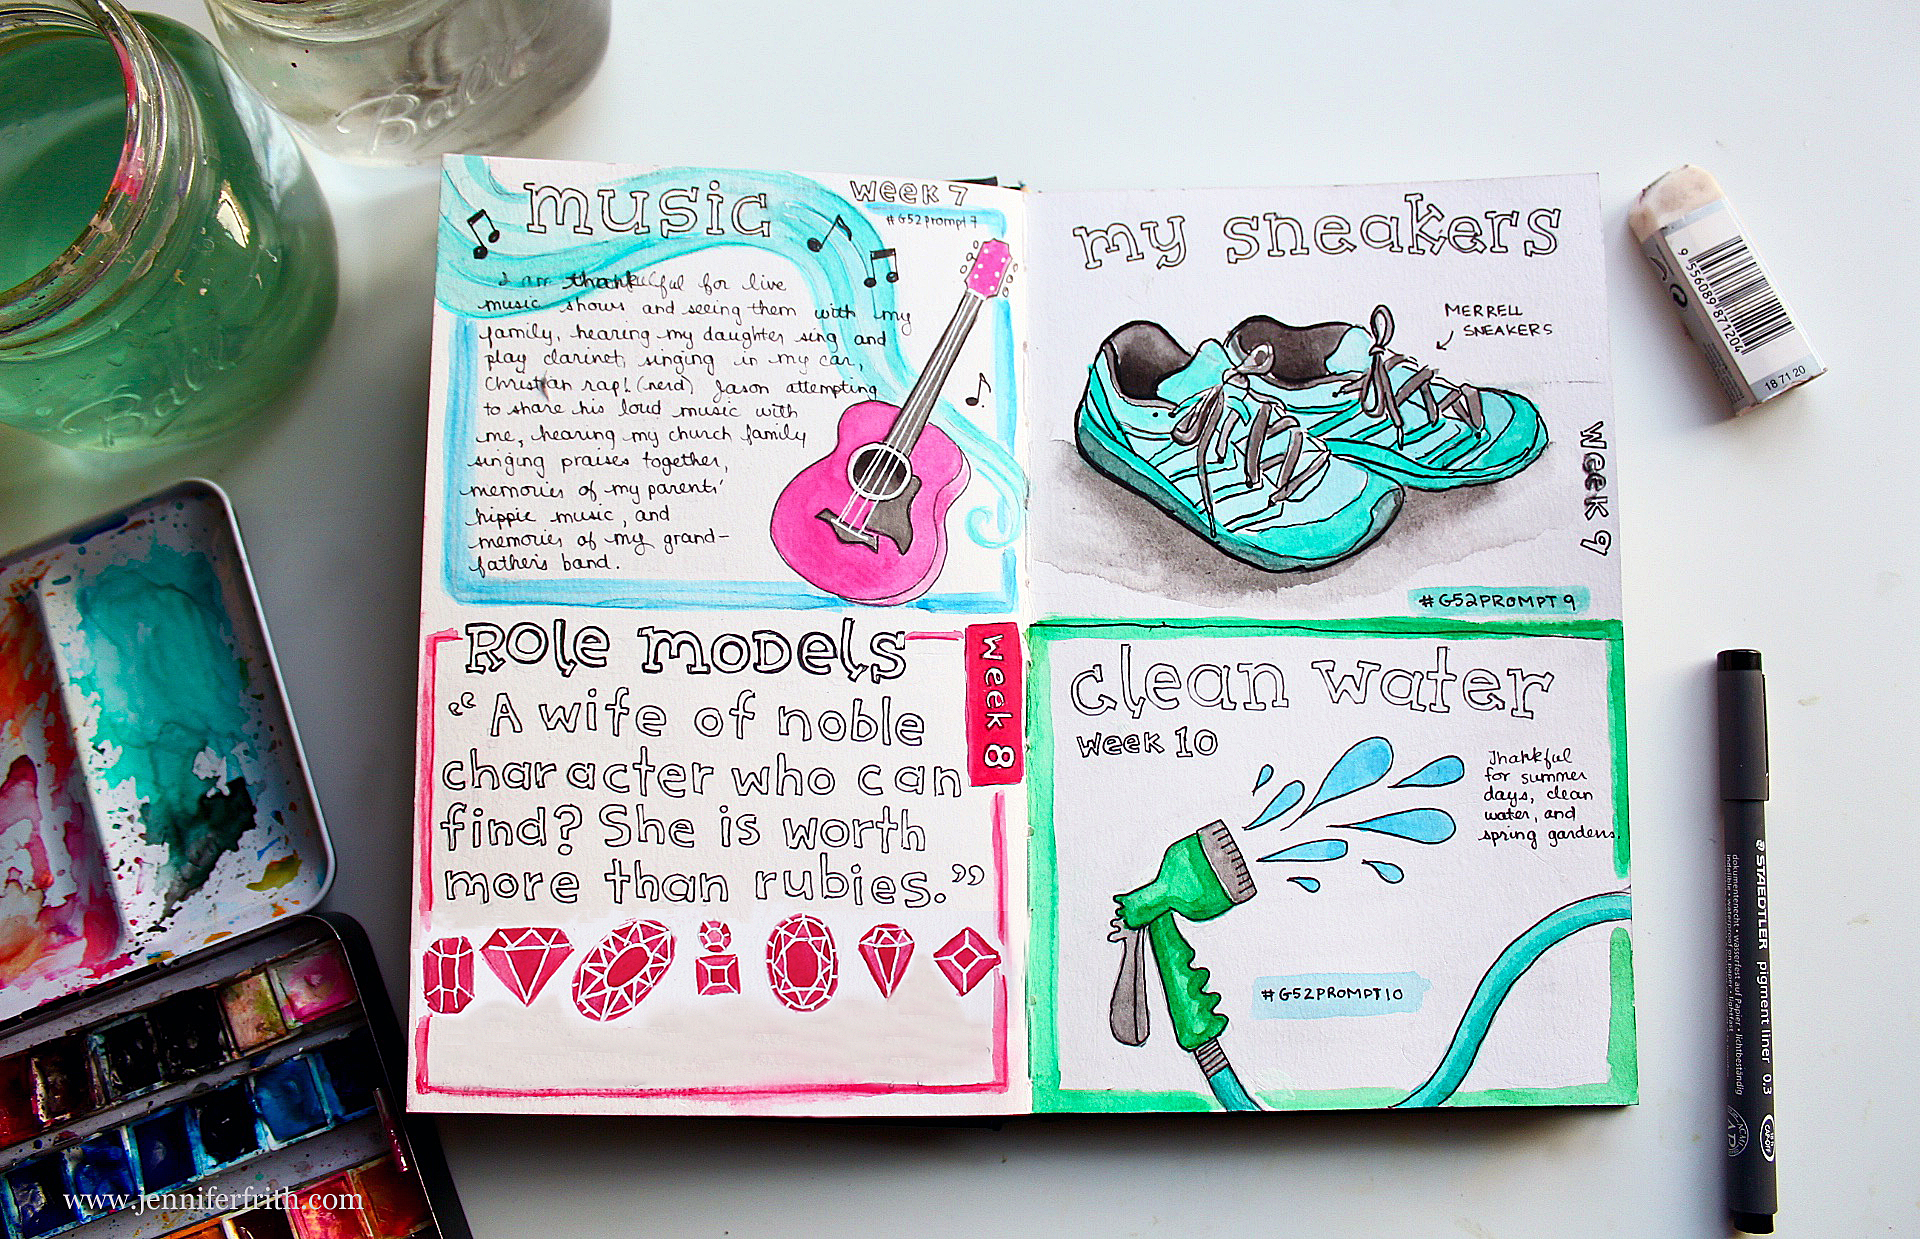 a few of my own pages from the Gratitude 52 Journaling project